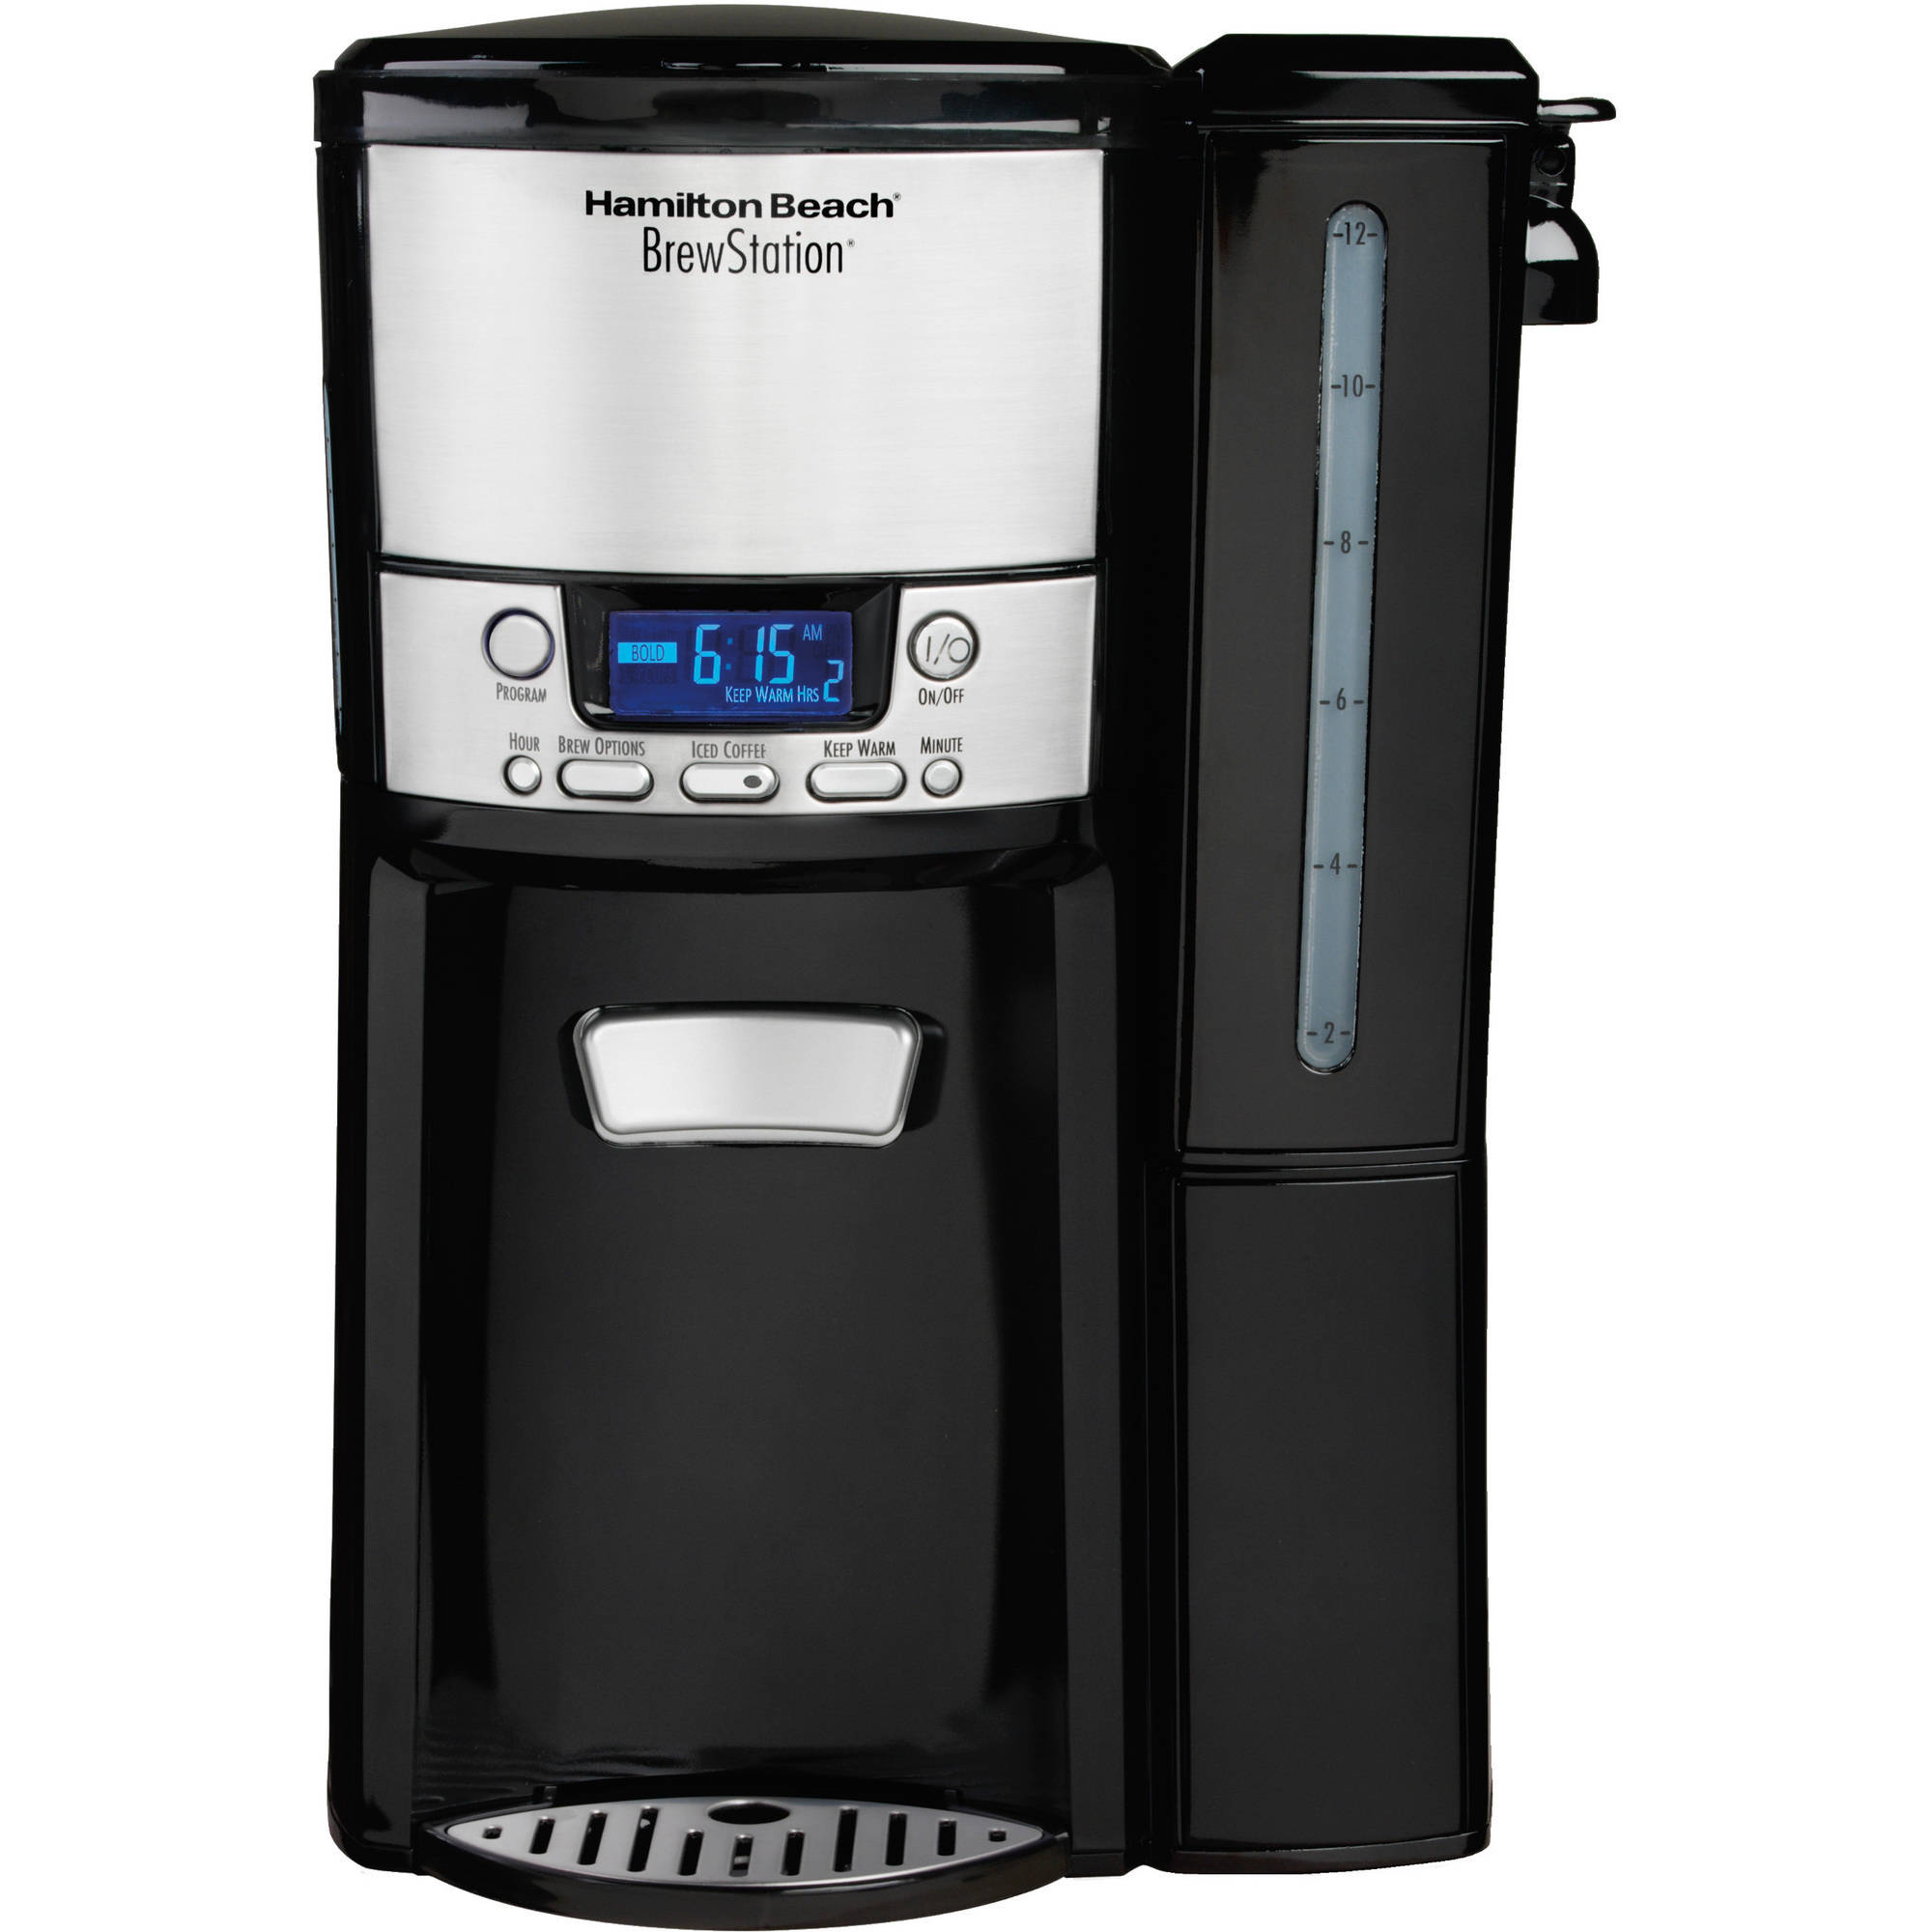 Hamilton Beach BrewStation 12-Cup Dispensing Coffeemaker with Removable Water Reservoir, 47900